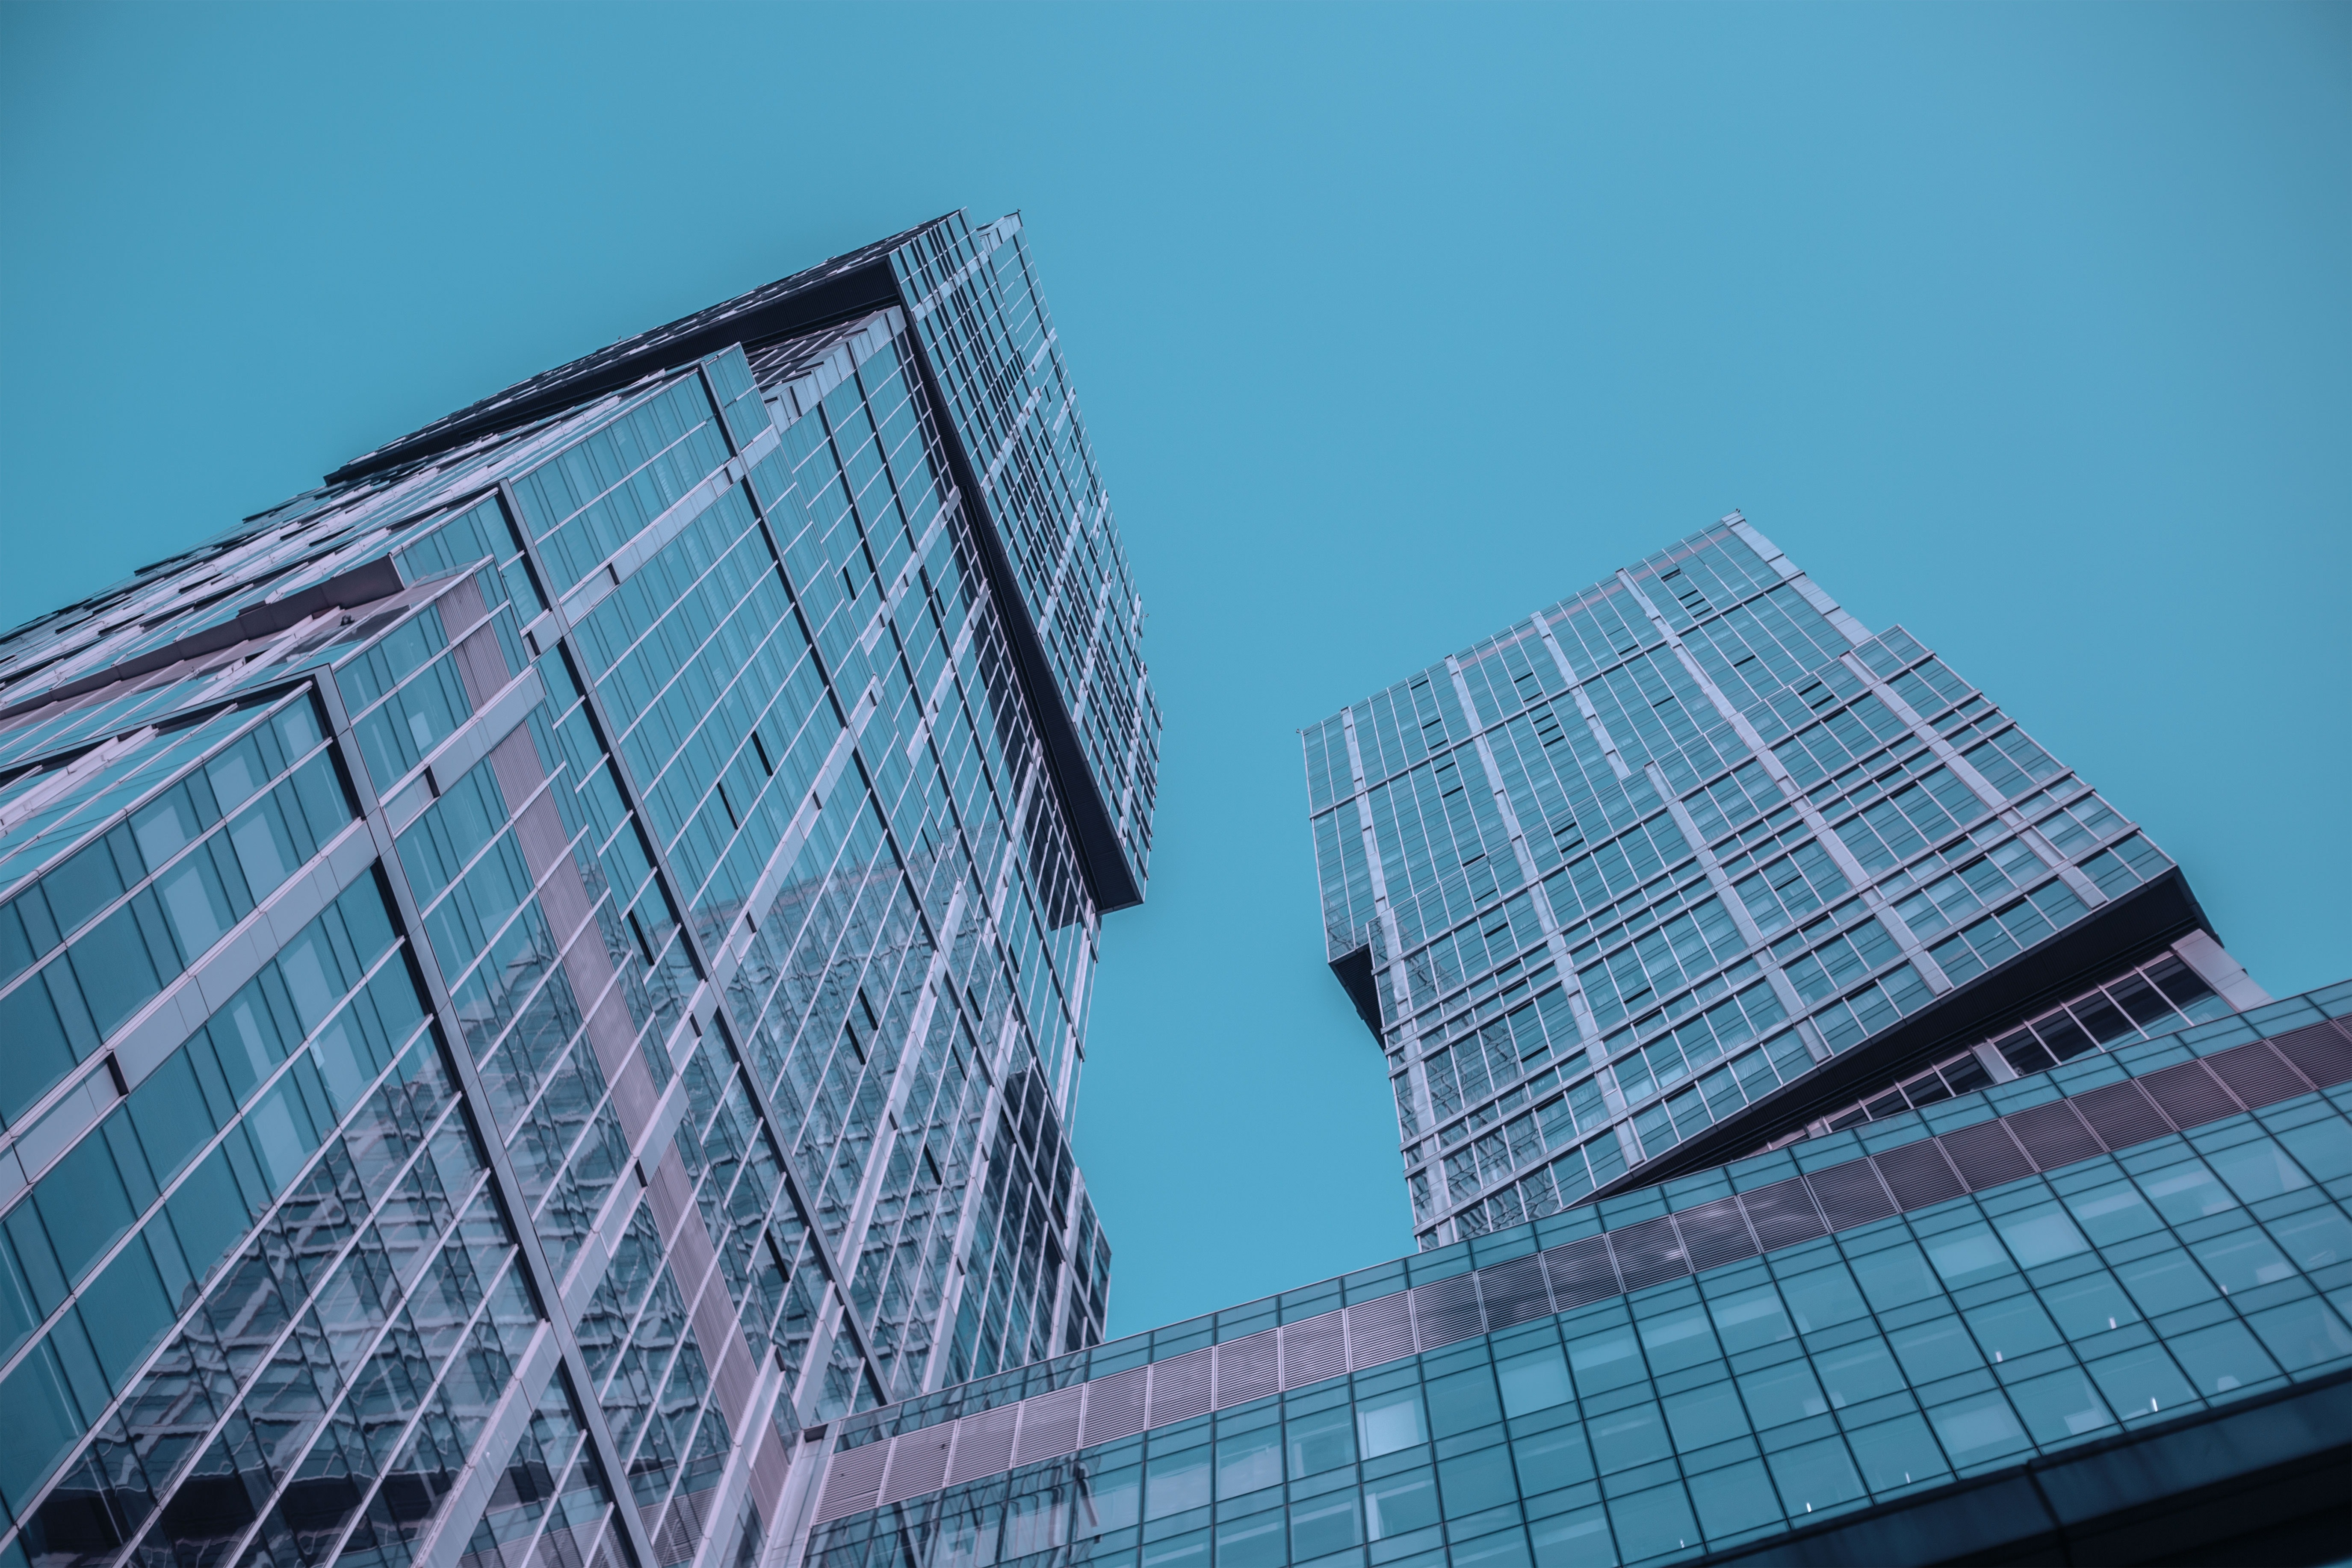 Low Angle Photography Of Building Free Stock Photo: Low Angle Photography Of High-Rise Building · Free Stock Photo